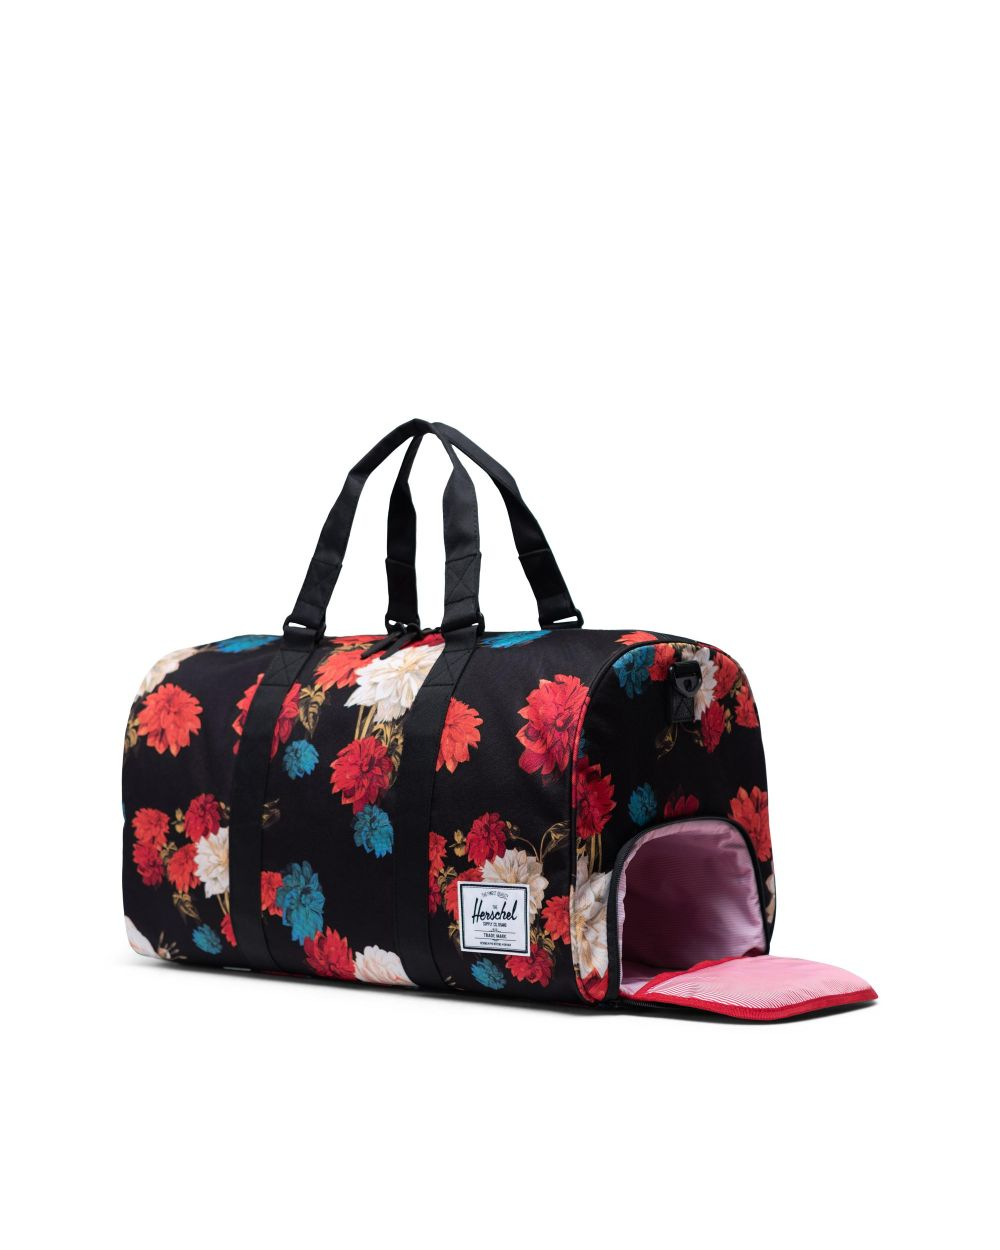 NOVEL DUFFLE - VINTAGE FLORAL BLACK